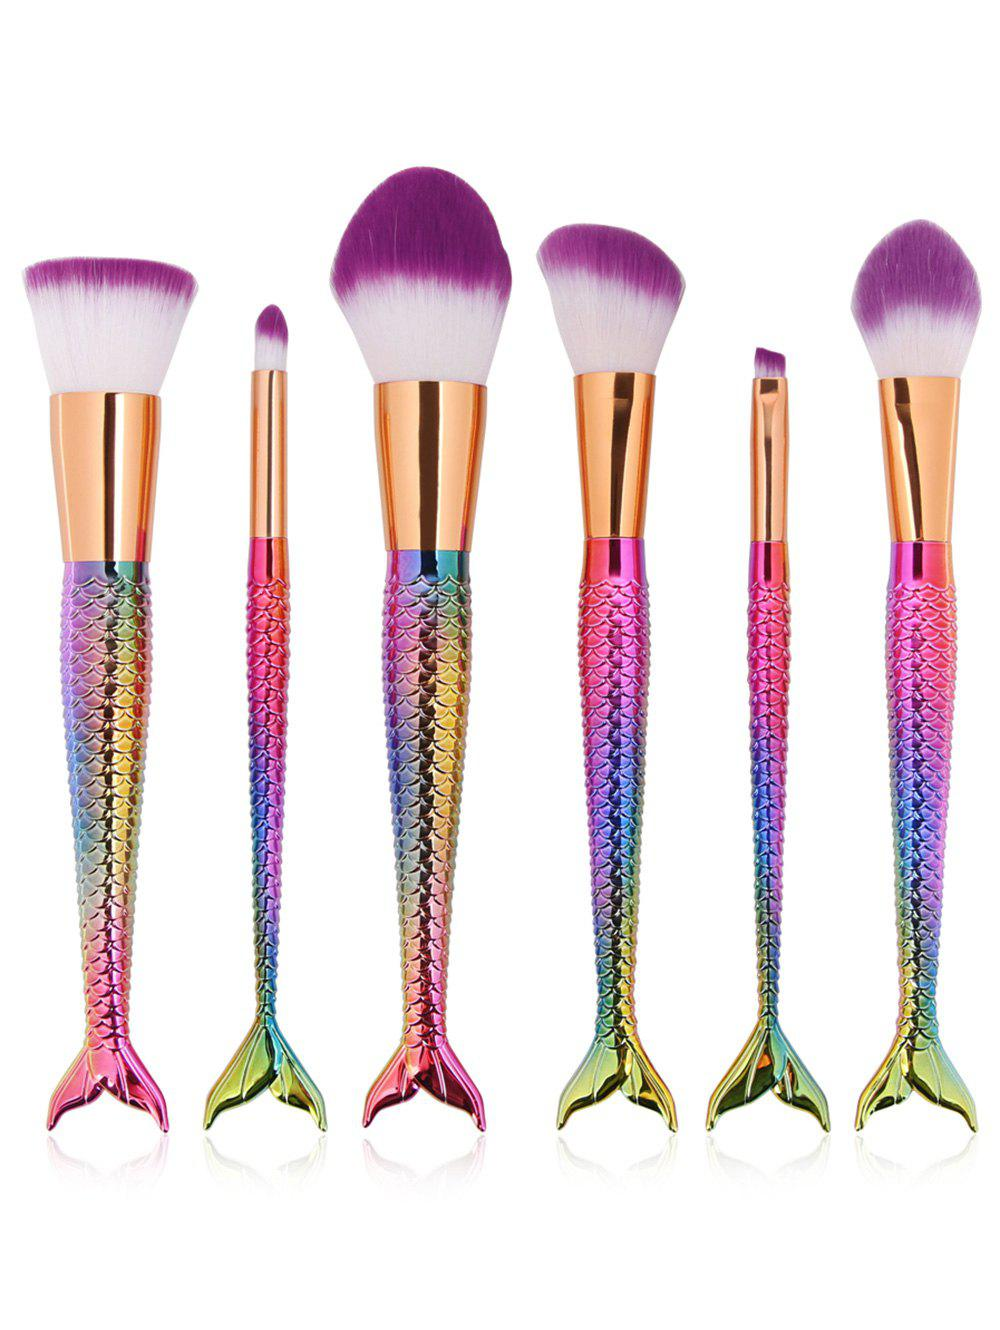 2018 6 Pcs Mermaid Design Multipurpose Makeup Brushes Kit